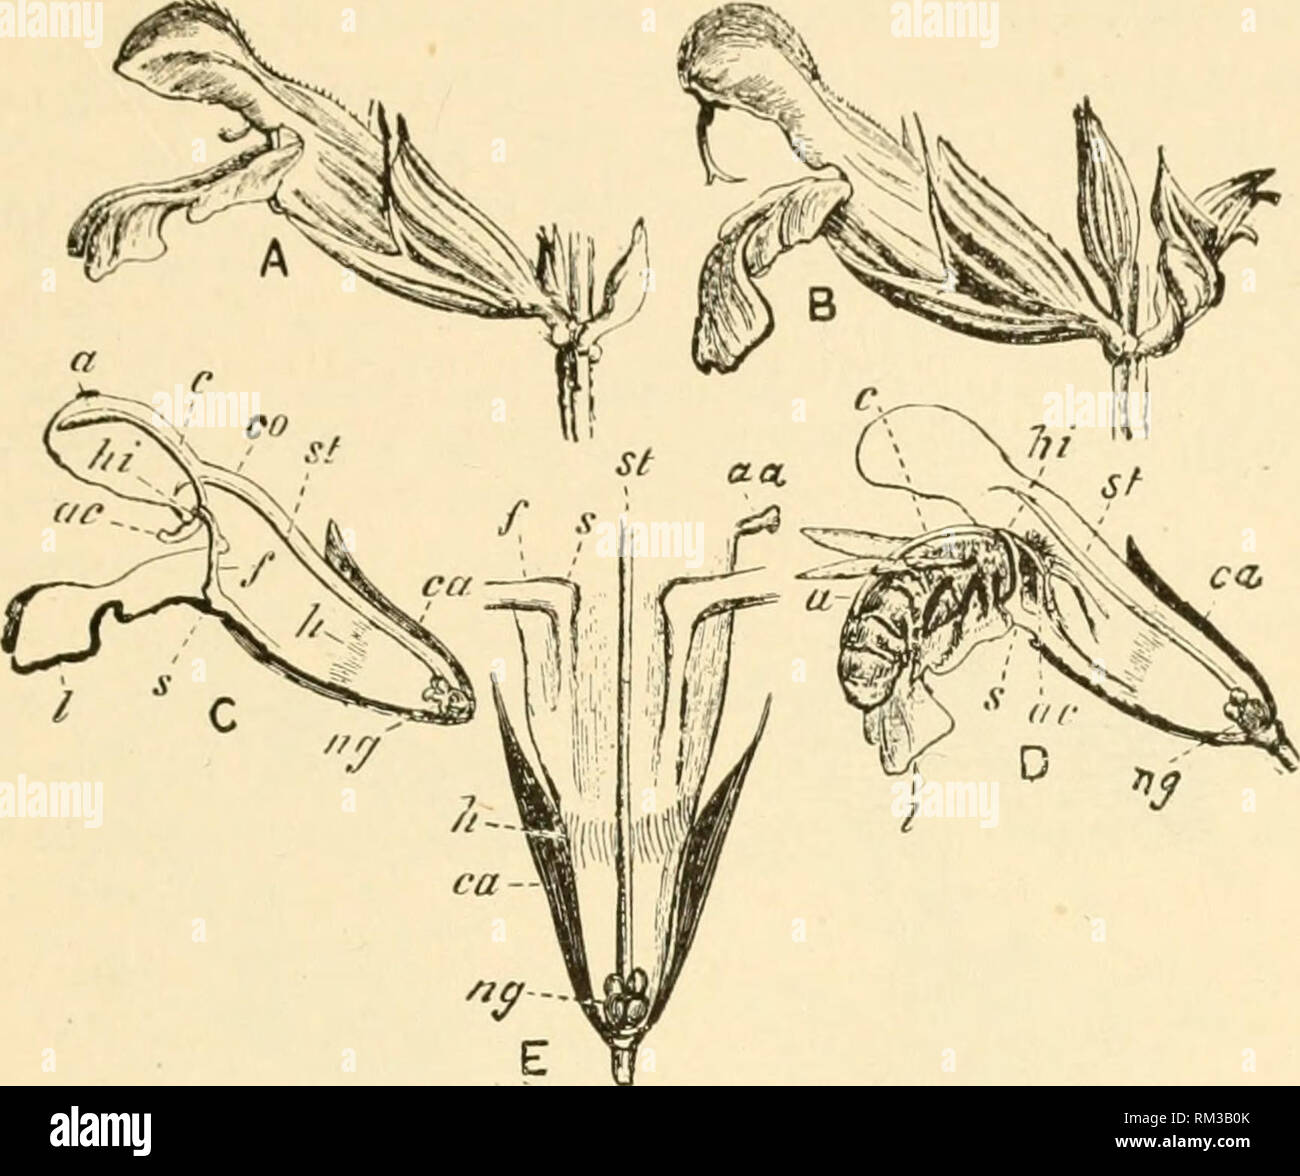 """. Annual report of the Board of Regents of the Smithsonian Institution. Smithsonian Institution; Smithsonian Institution. Archives; Discoveries in science. BEES AND FLOWERS. 478 to ivacli the noctiir (at ikj, fiii"""". 1) w Ixv (D) strikes with liis head the short sterile aiMU {ac) whieh aets as a sort of l(>ver to hrino; >lowu the loii<i- arm with its poHen sac {(t) to cover his haelc with the fertile dust. 'Vs laden the l)usy workman (lies to anoth'.'r flower and,. Fig. 1.—Flower of Salvia ojficinalis. (.From Cheshire: Bees and Bee-keeping.) A. Yoiing flower, showing an atro - Stock Image"""